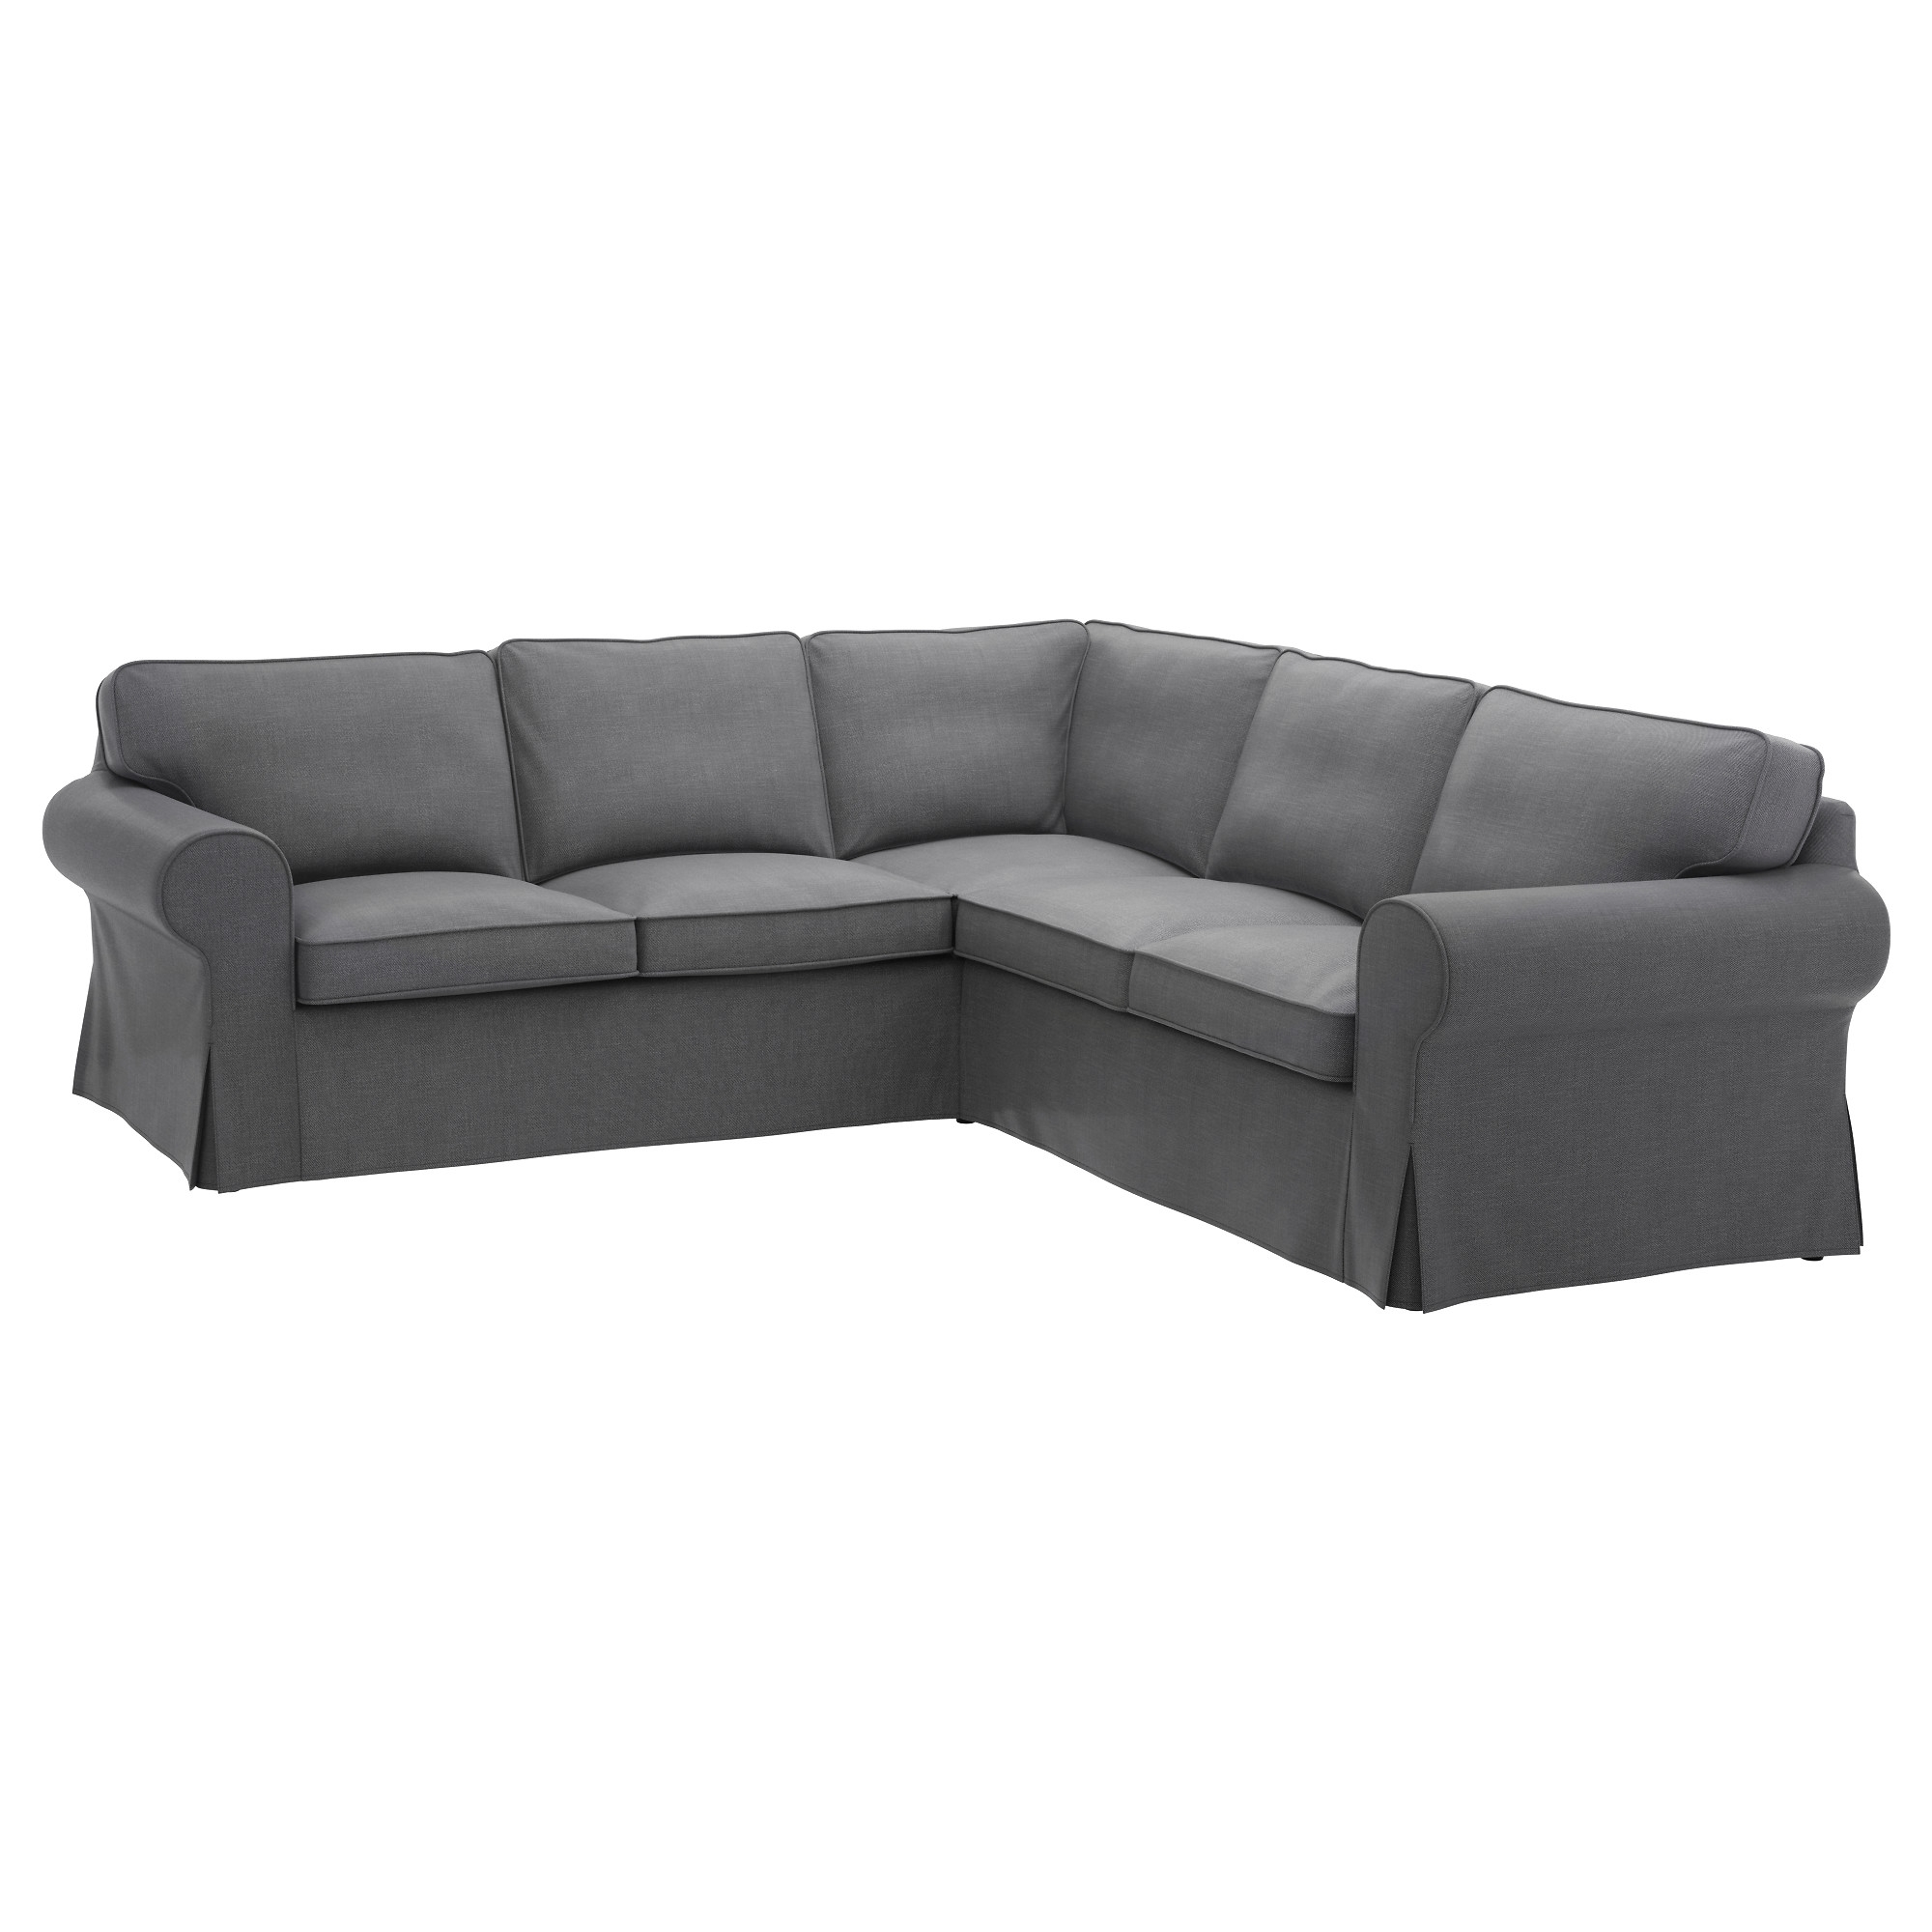 Ikea Chaise Couches Throughout Well Liked Ektorp Sectional, 4 Seat Corner – Nordvalla Dark Gray – Ikea (Gallery 6 of 15)